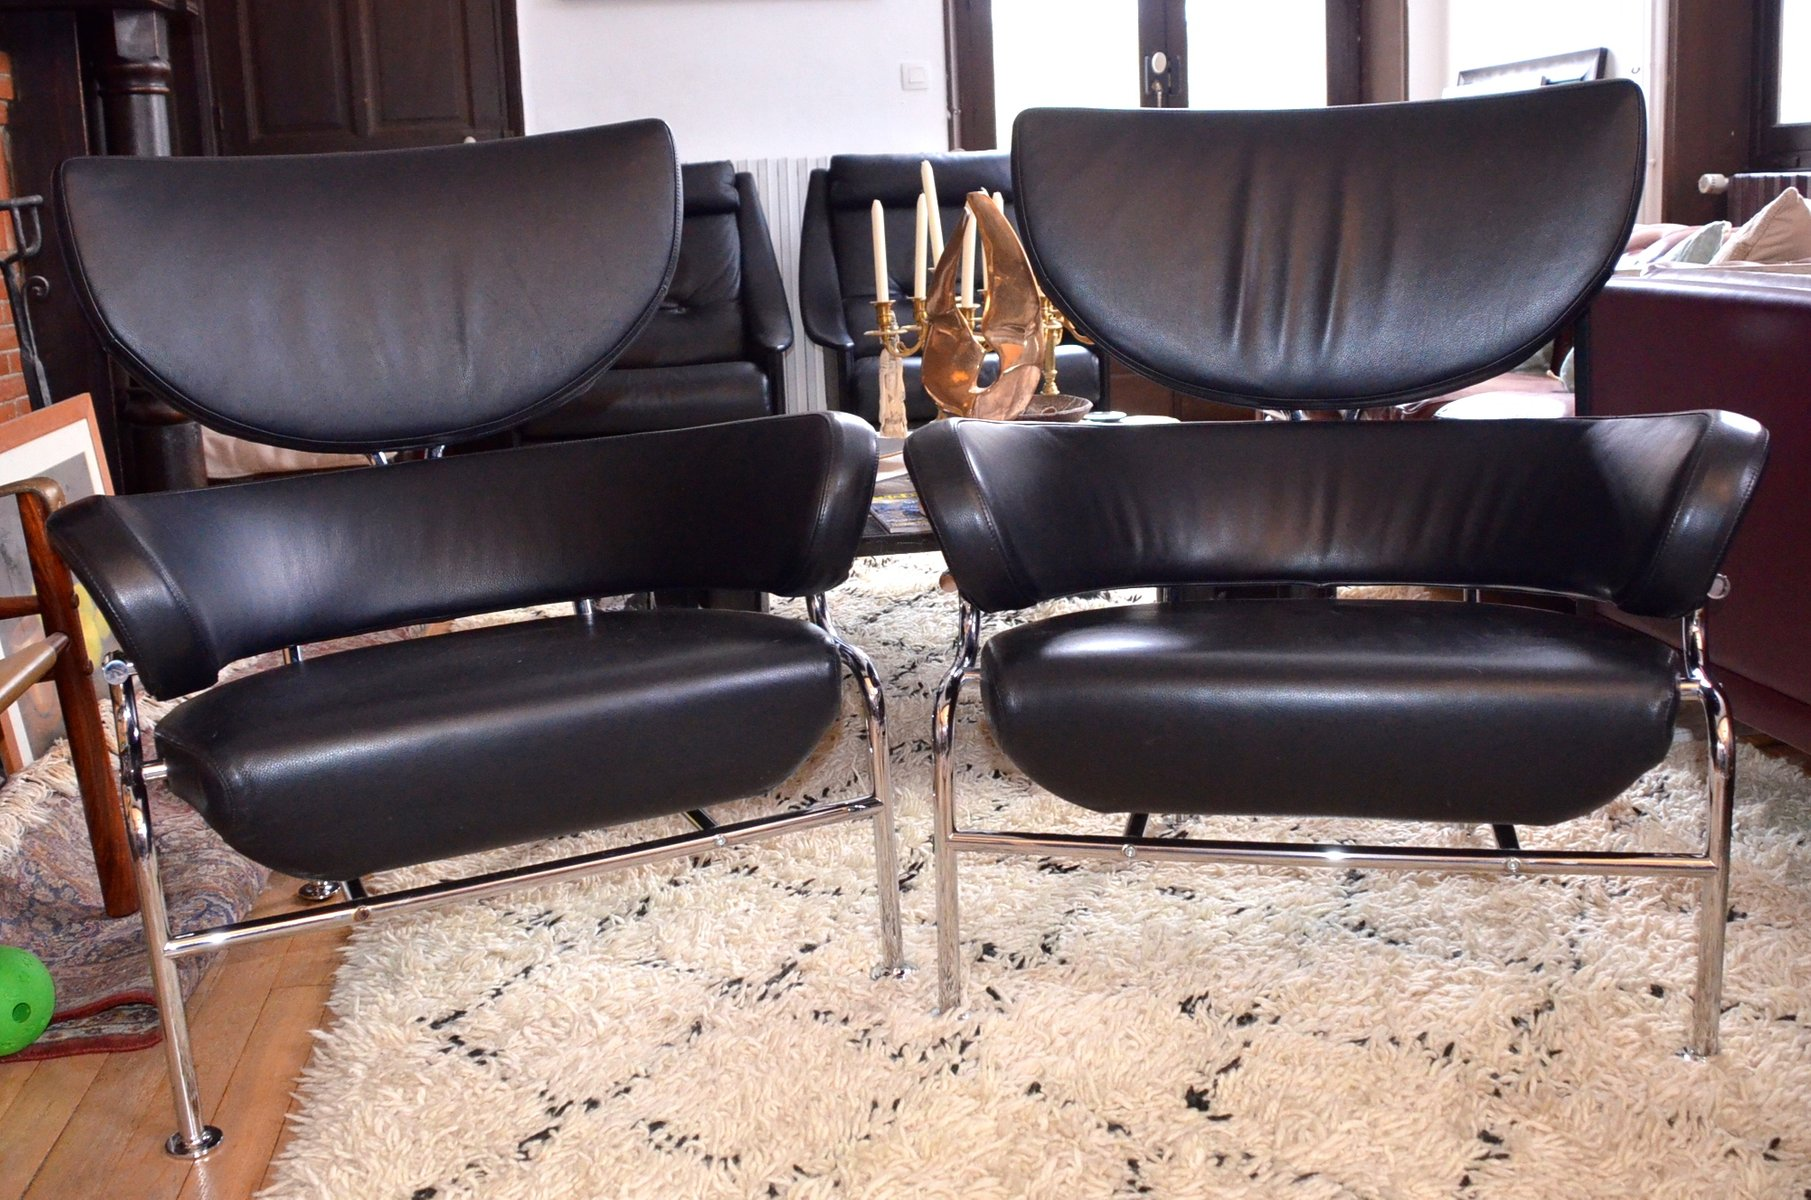 Sedia Cassina Vintage Vintage Tre Pezzi Black Leather Armchairs By Franco Albini For Cassina Set Of 2